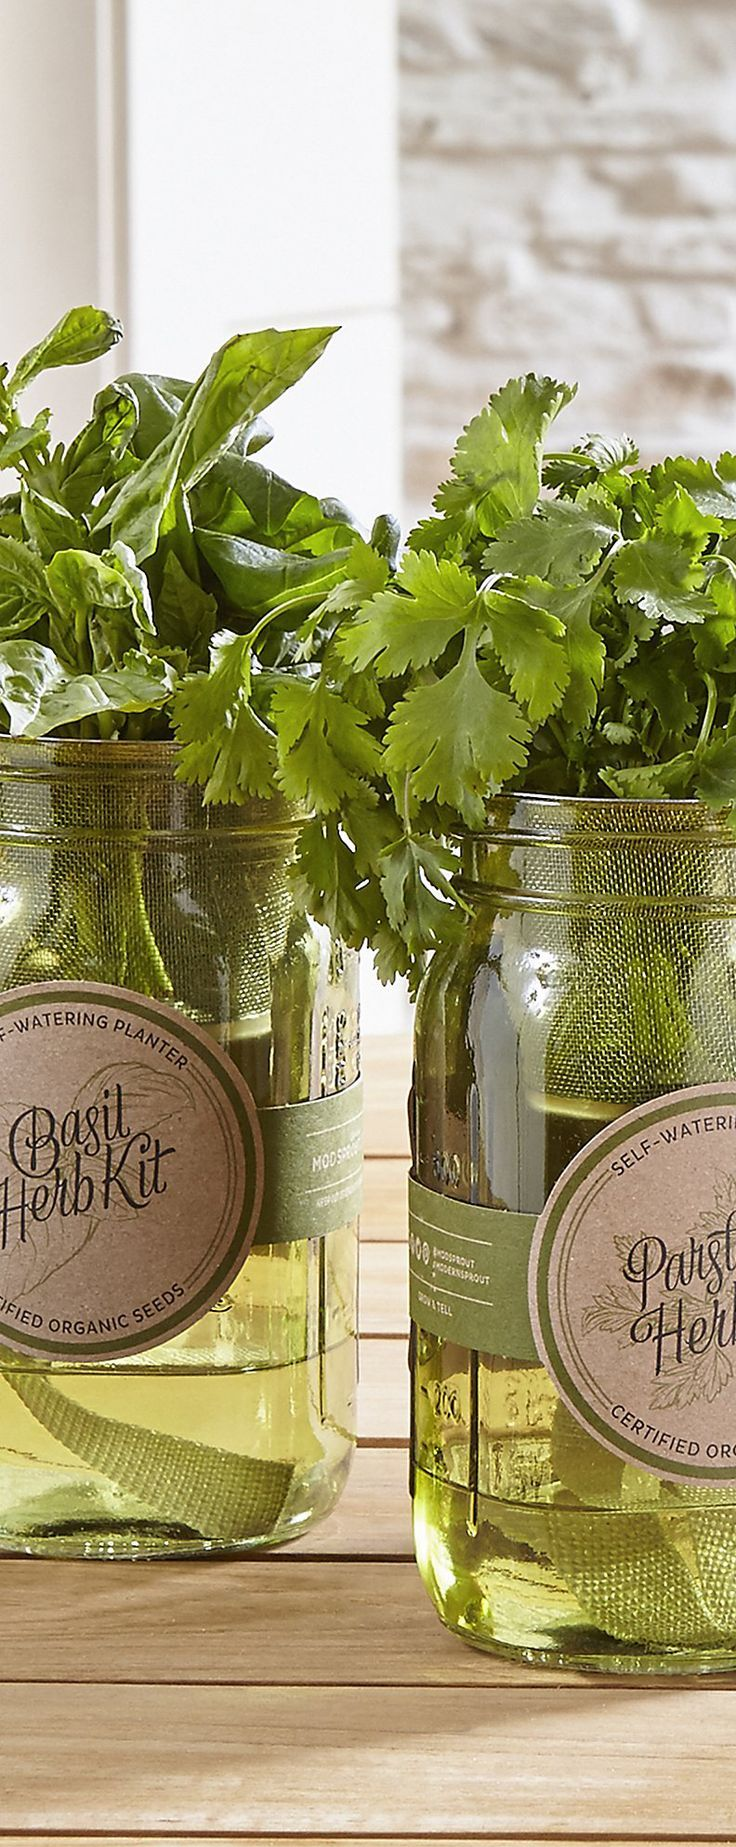 Garden Jar Herb Kit We are want to say thanks if you like